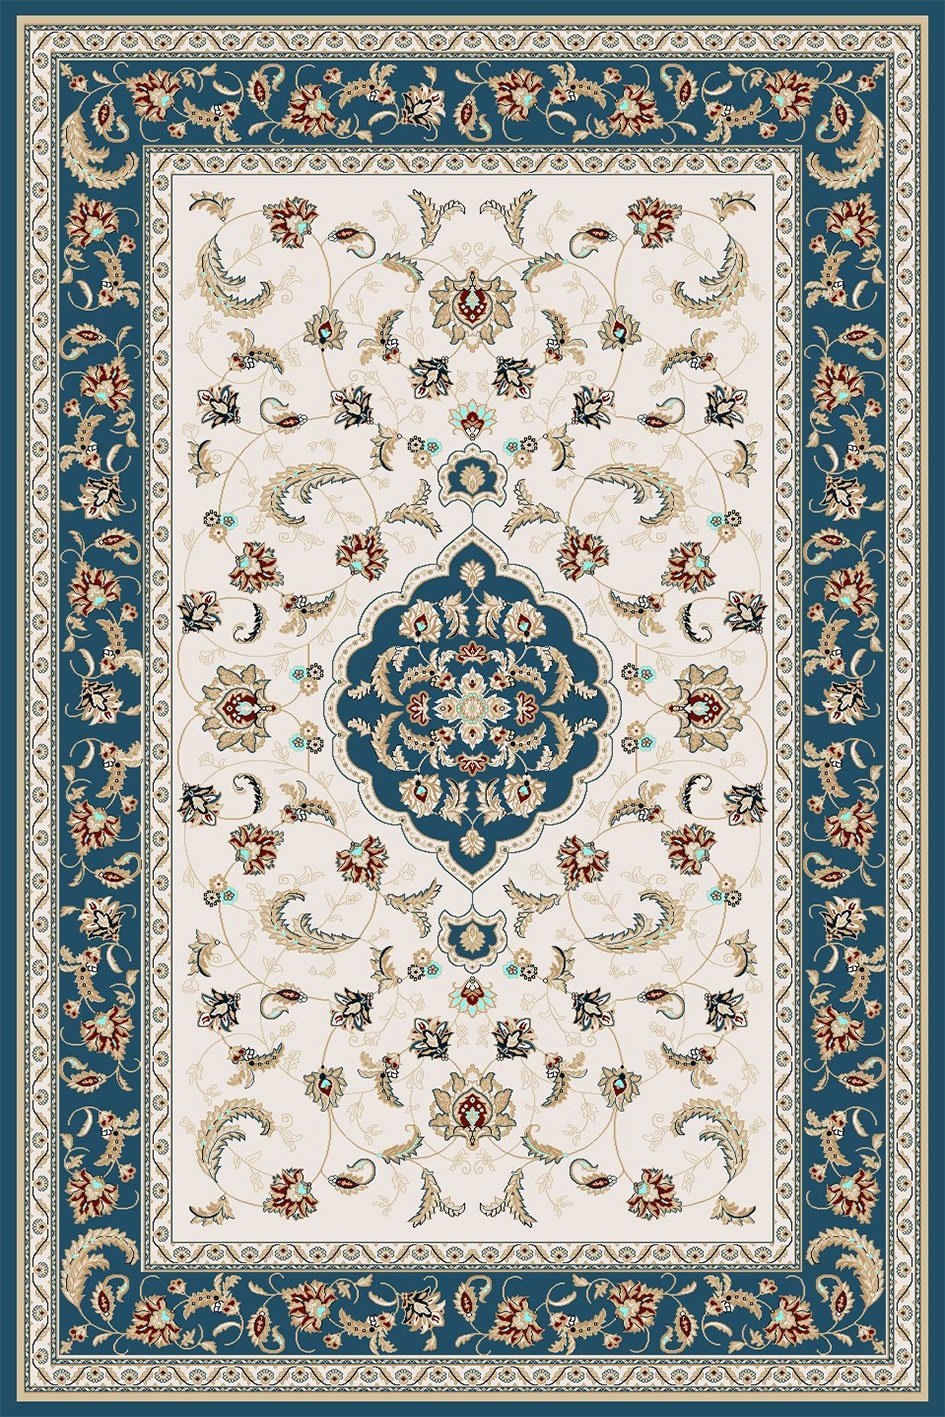 Maxmar Carpet Gulendam Series Blue Decorative Area Rug 3022